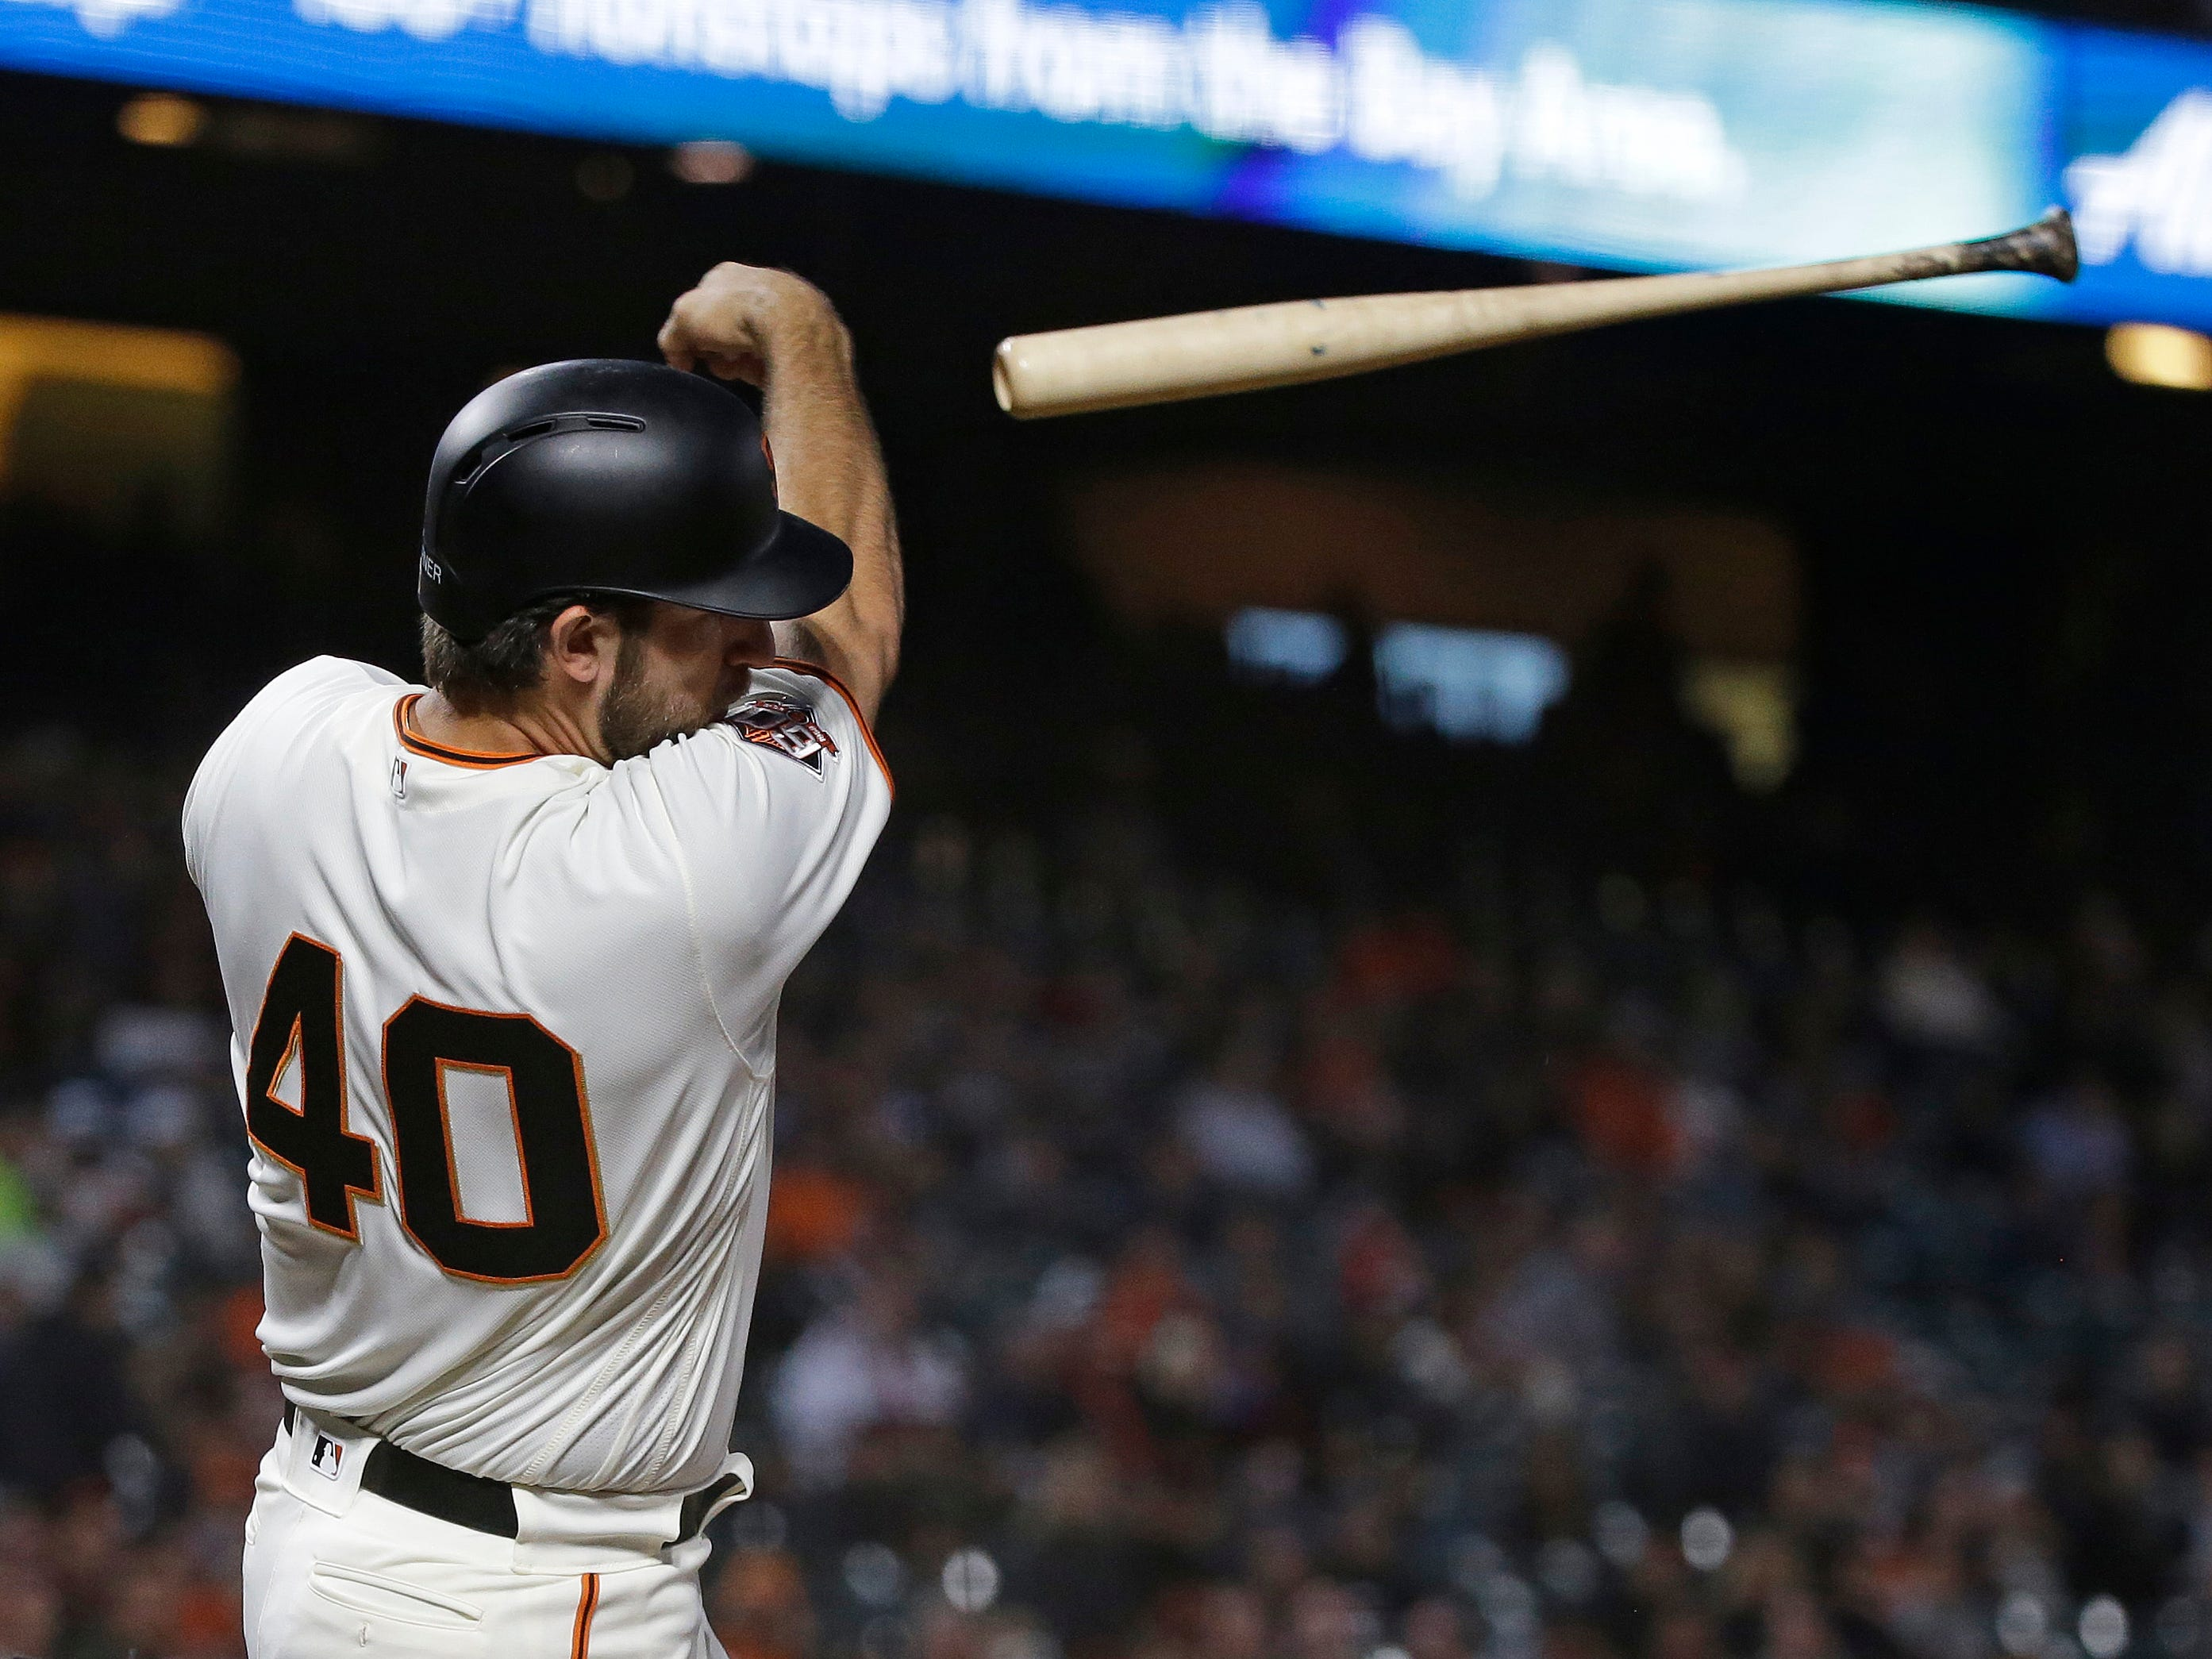 San Francisco Giants' Madison Bumgarner sends his bat flying while facing Arizona Diamondbacks starting pitcher Clay Buchholz in the third inning of a baseball game Tuesday, Aug. 28, 2018, in San Francisco.